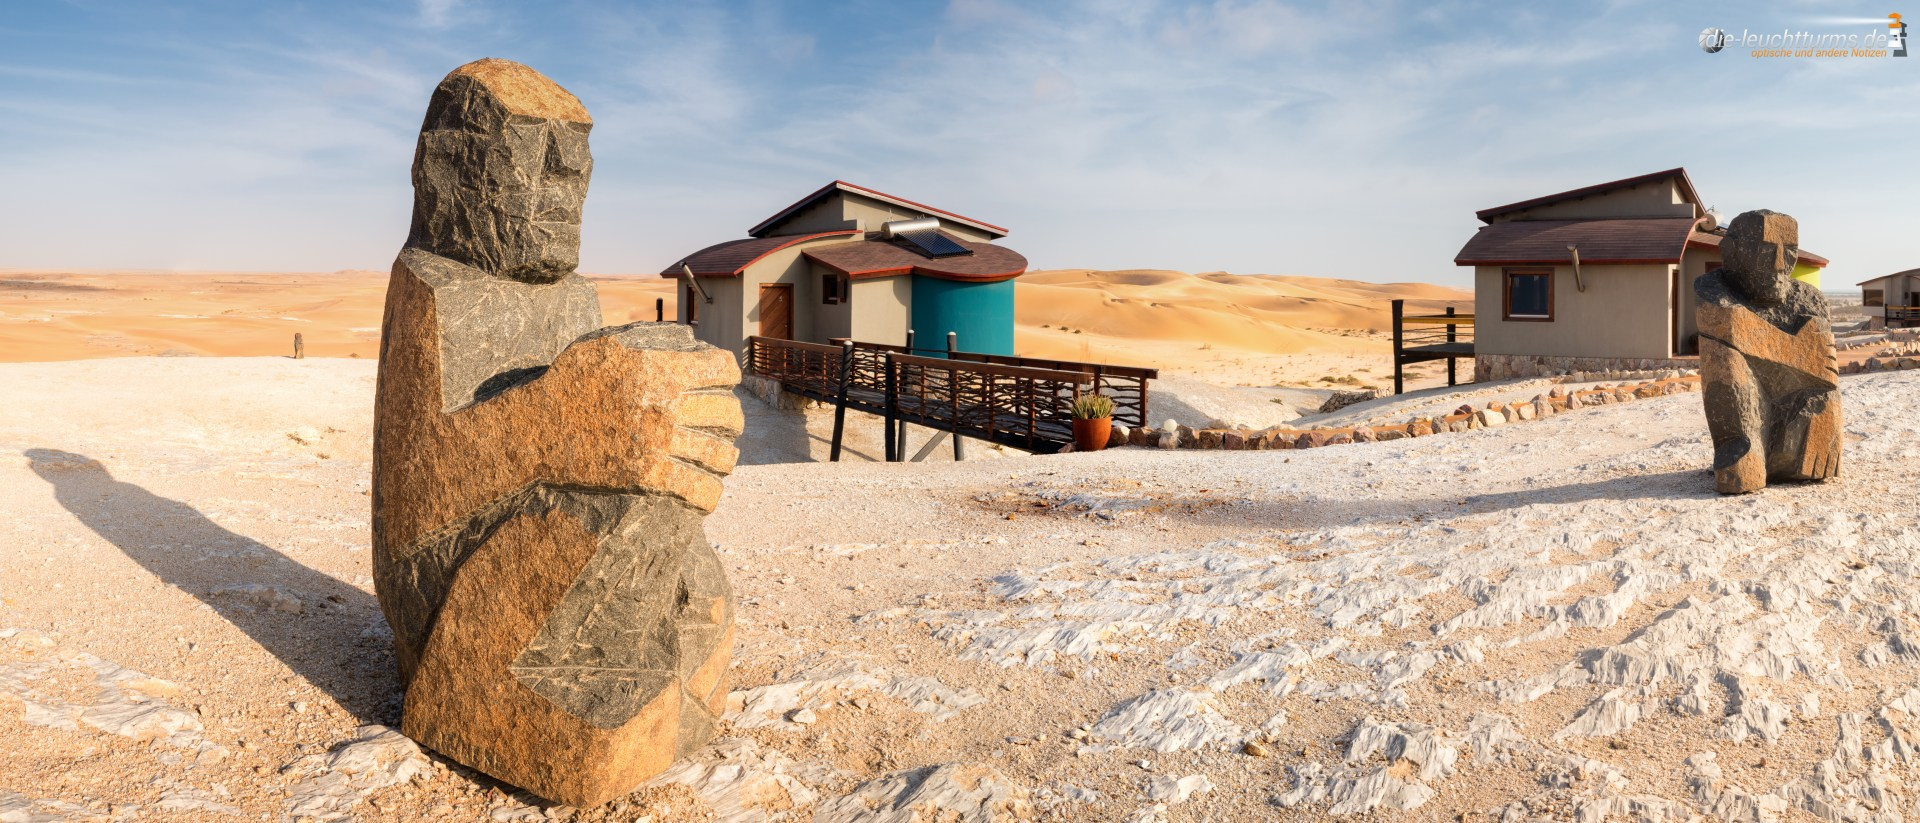 Stay at the edge of the Namib